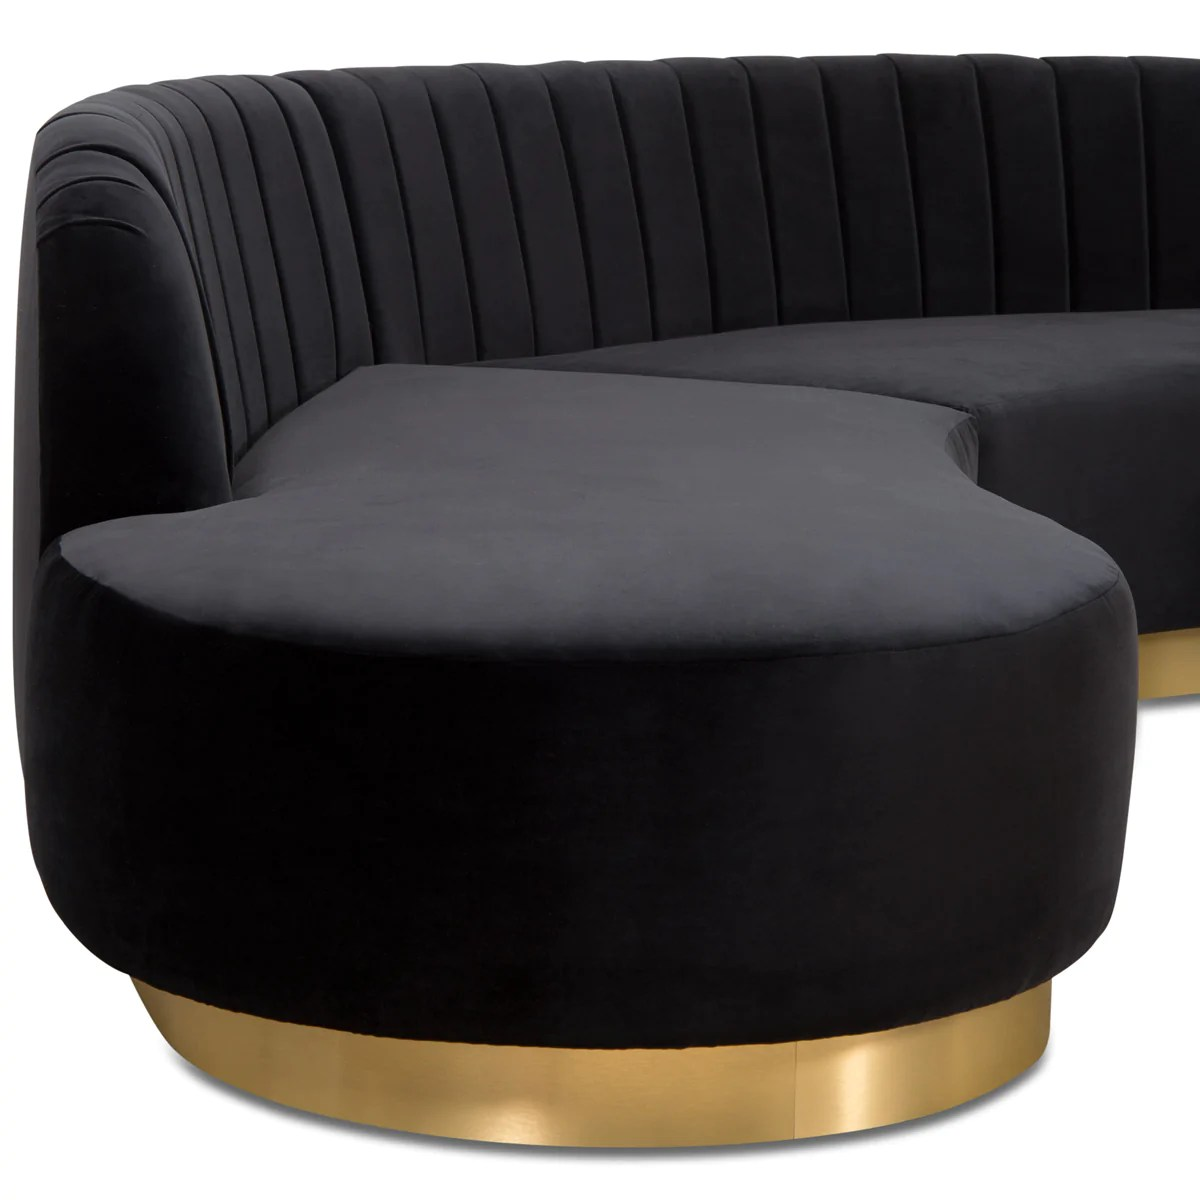 Biarritz Sectional Curved Sectional With Brass Base Modshop